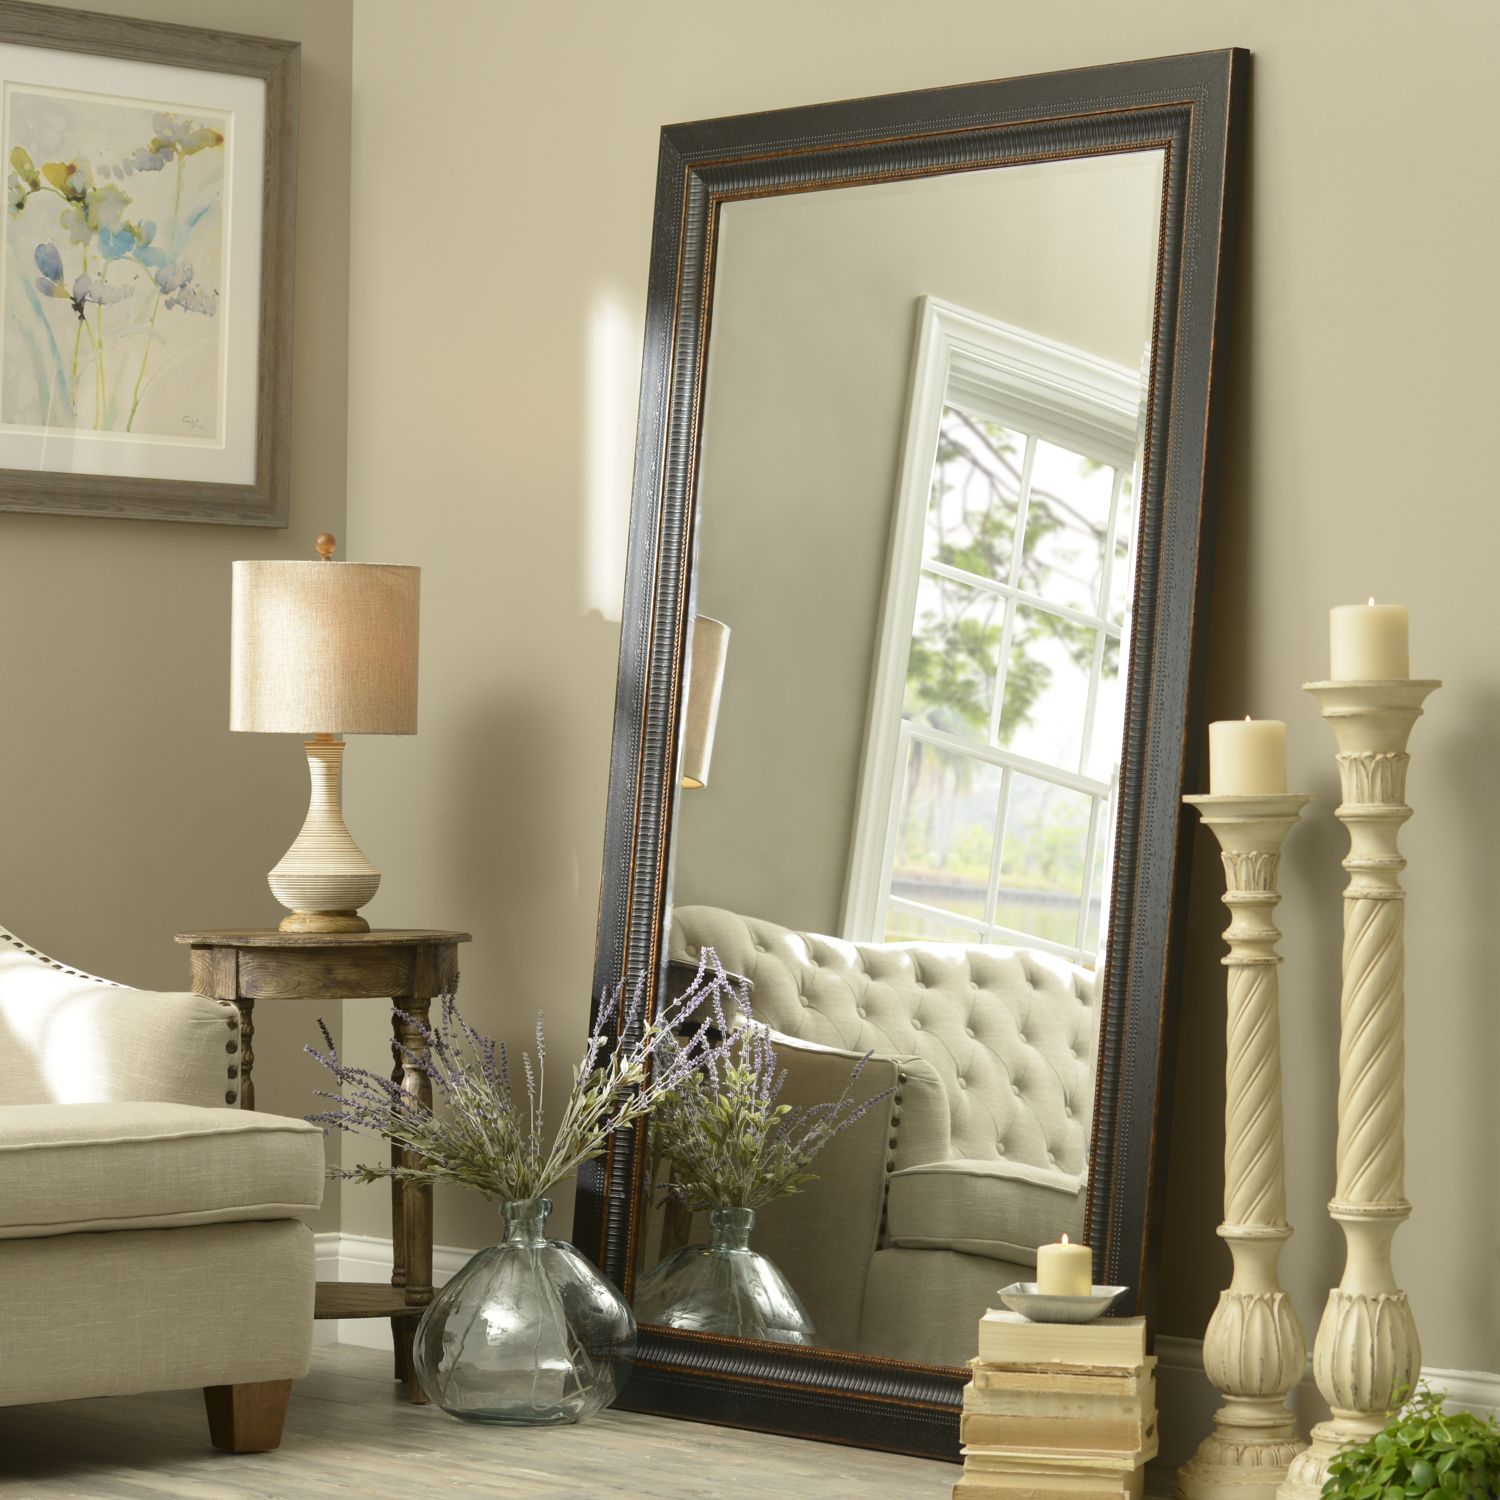 Enjoy This Stunning 46x76 Black Framed Mirror For Your Home This Large Mirror Is Eye Catching Both Leaning Floor Mirror Decor Living Room Mirrors Mirror Decor #oversized #mirror #living #room